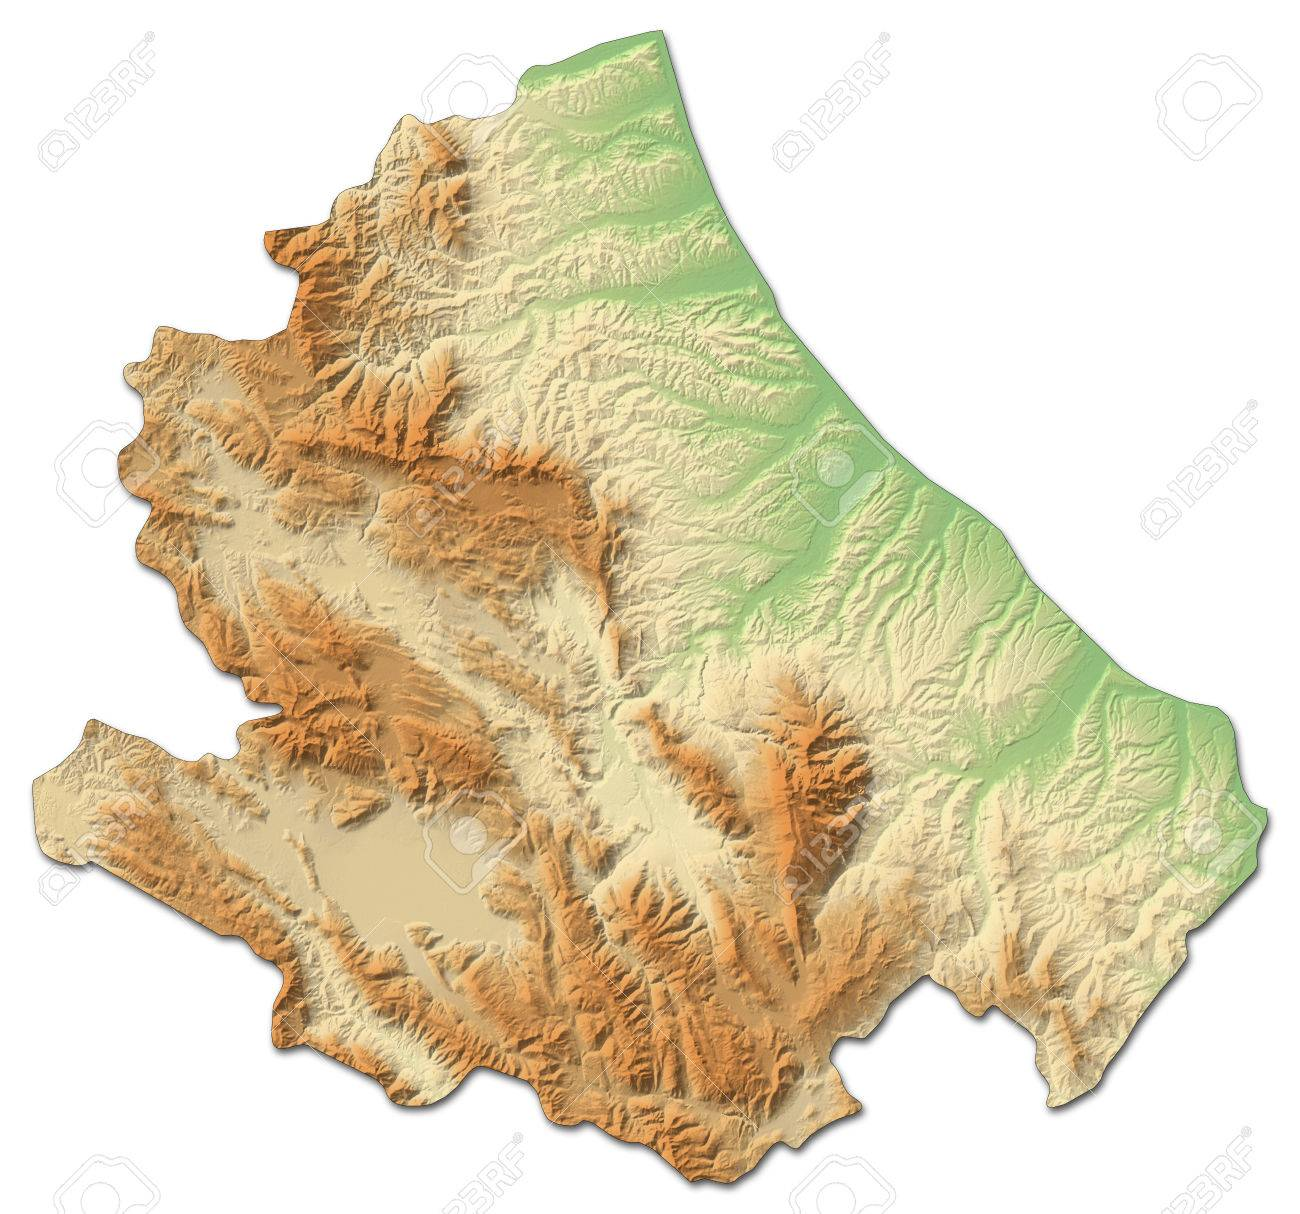 Relief Map Of Abruzzo A Province Of Italy With Shaded Relief